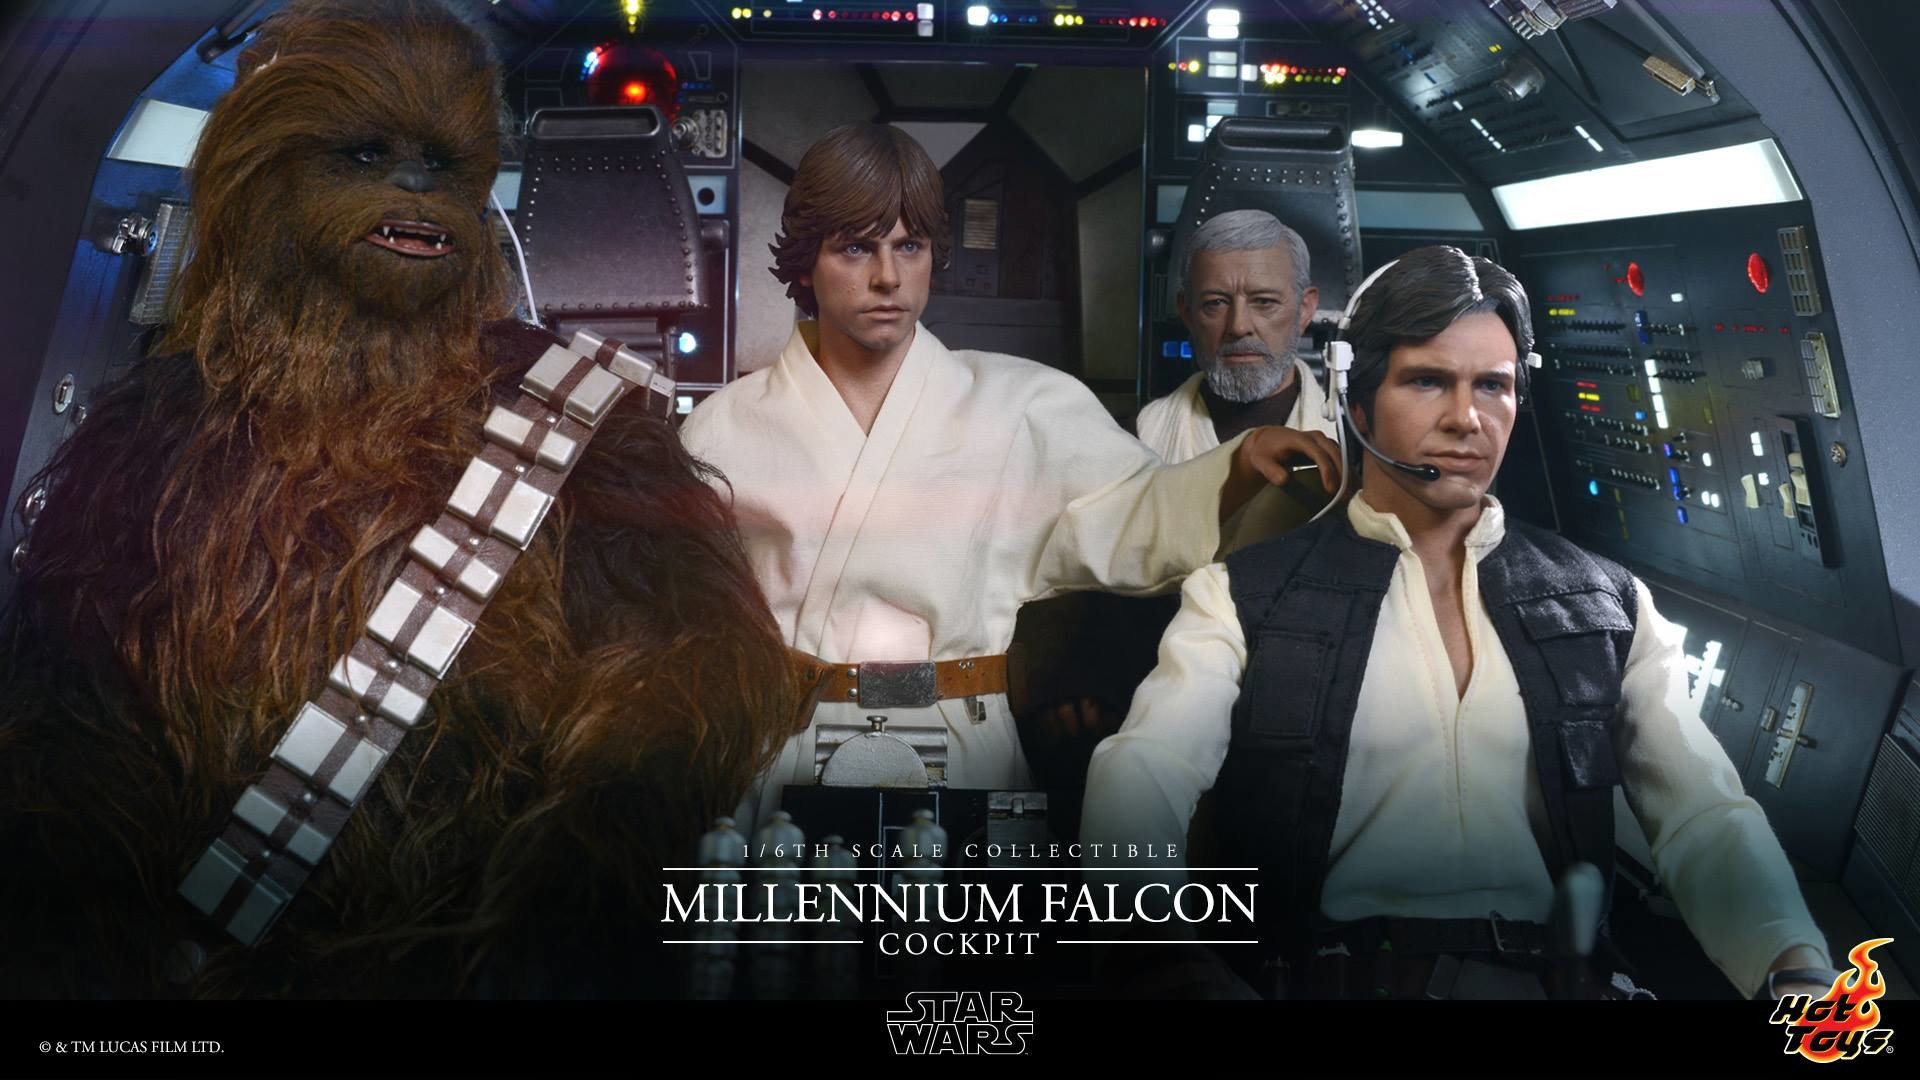 [SDCC'15] Hot Toys gets even bigger with 1/6th scale Millennium Falcon  cockpit — Major Spoilers—Comic Book Reviews, News, Previews, and Podcasts